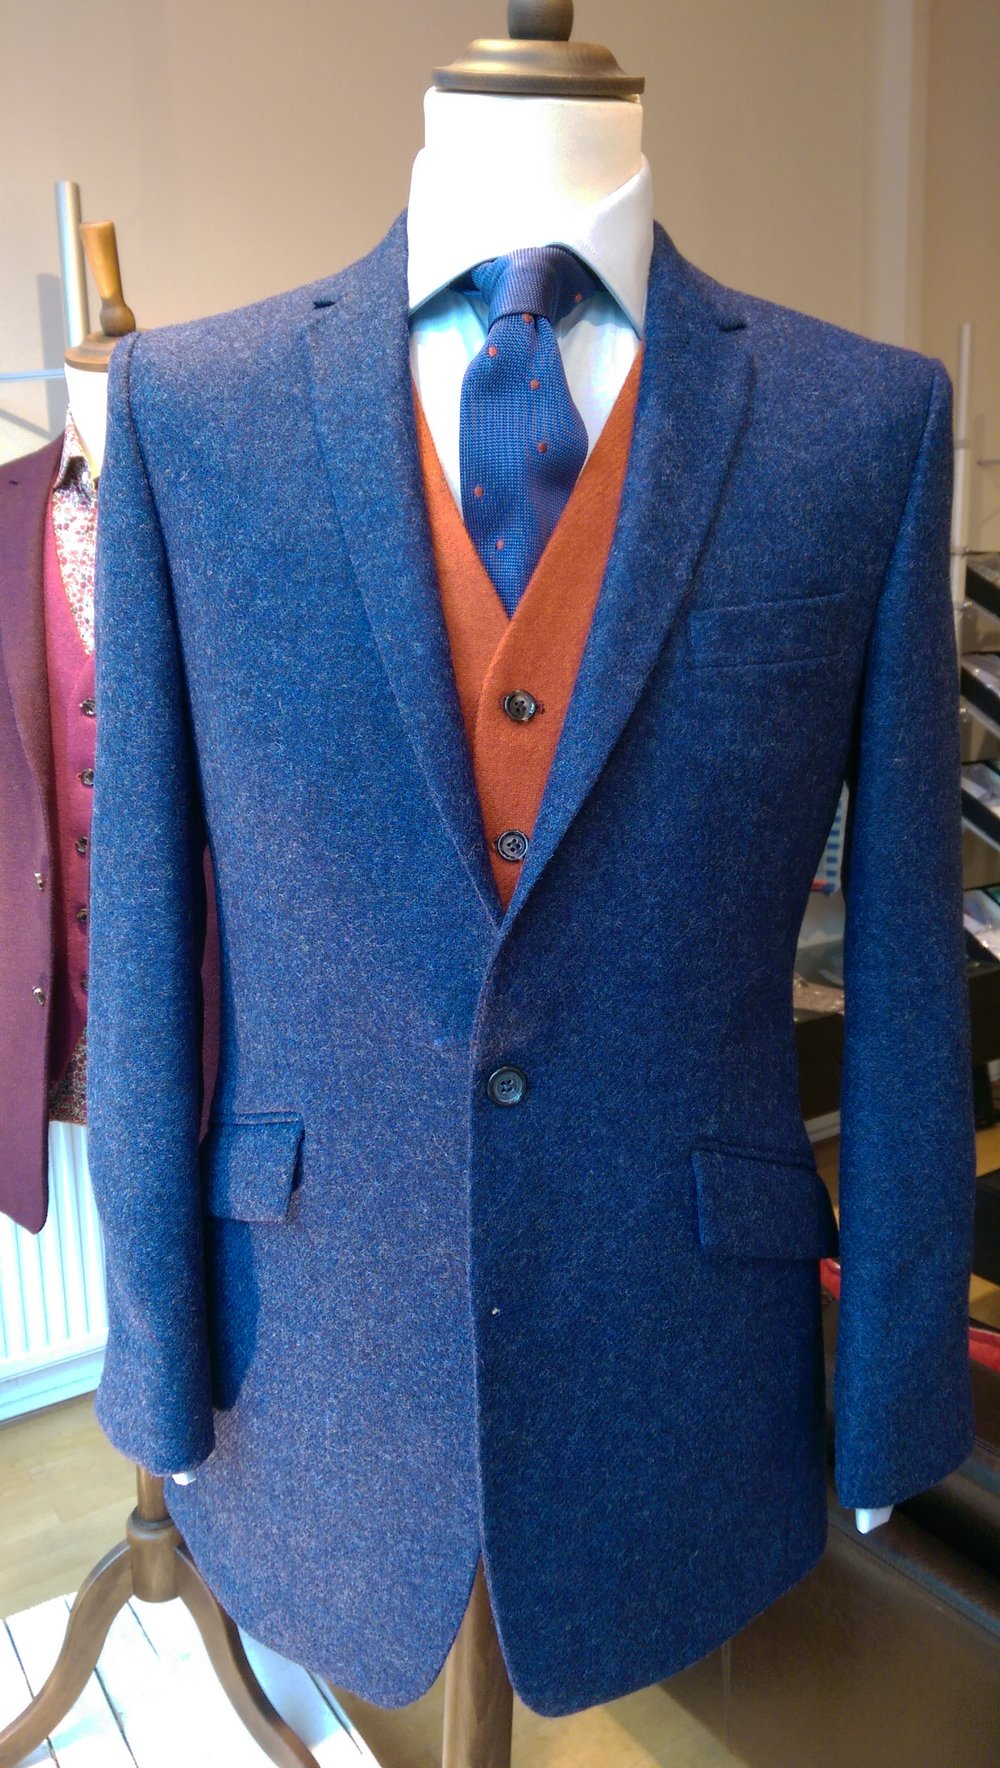 blue-tweed-wool-moon-orange-waistcoat-jacket-british-uk-made-augustus-hare-tie.jpg